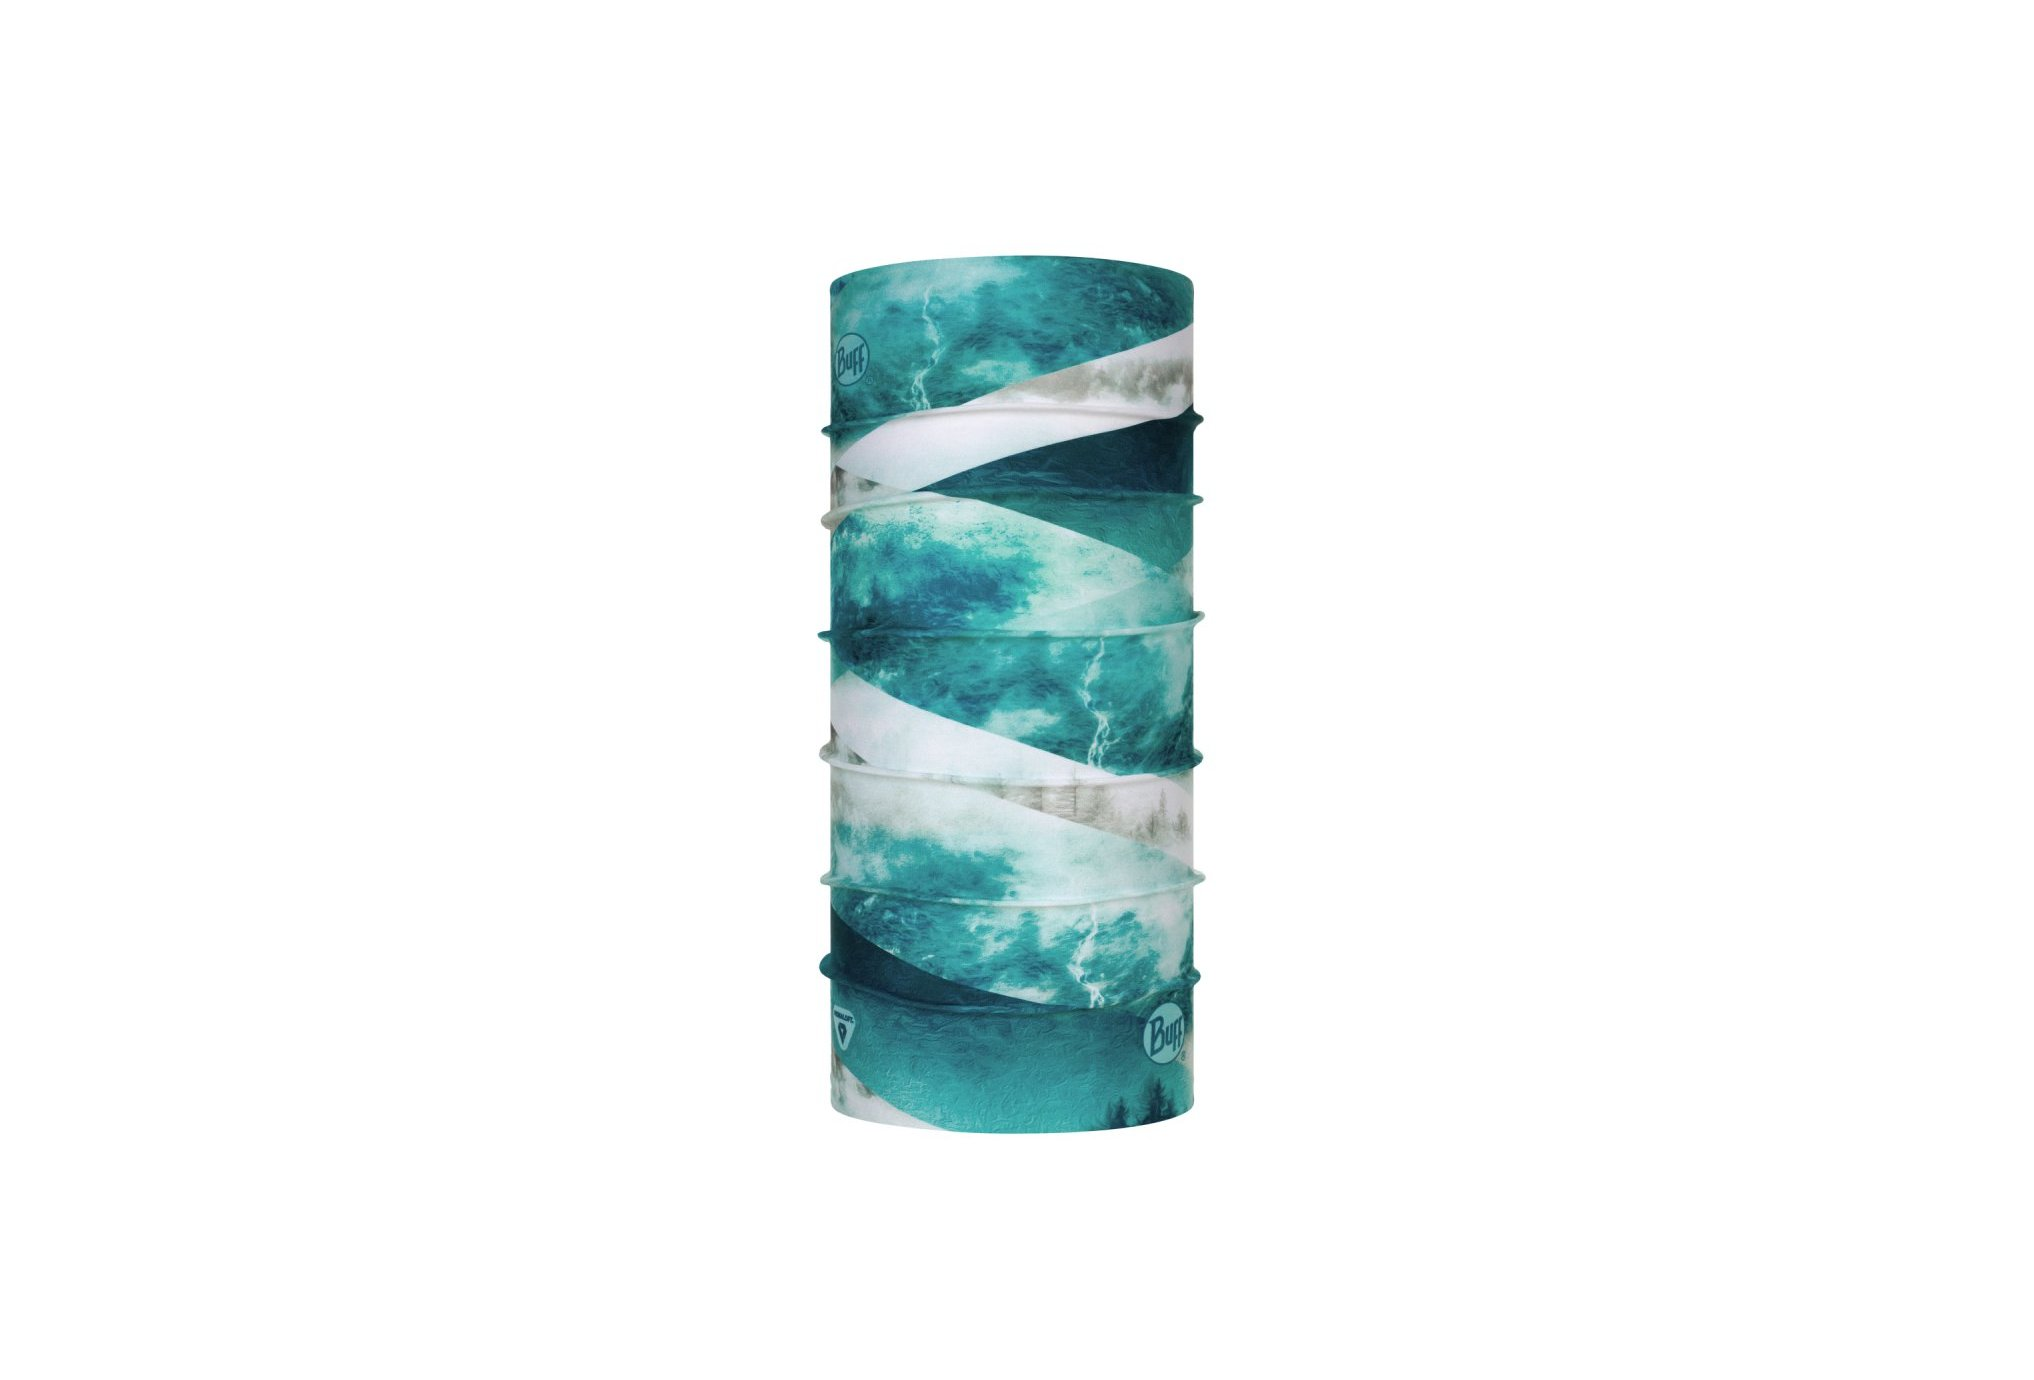 Buff ThermoNet Ethereal Aqua Tours de cou